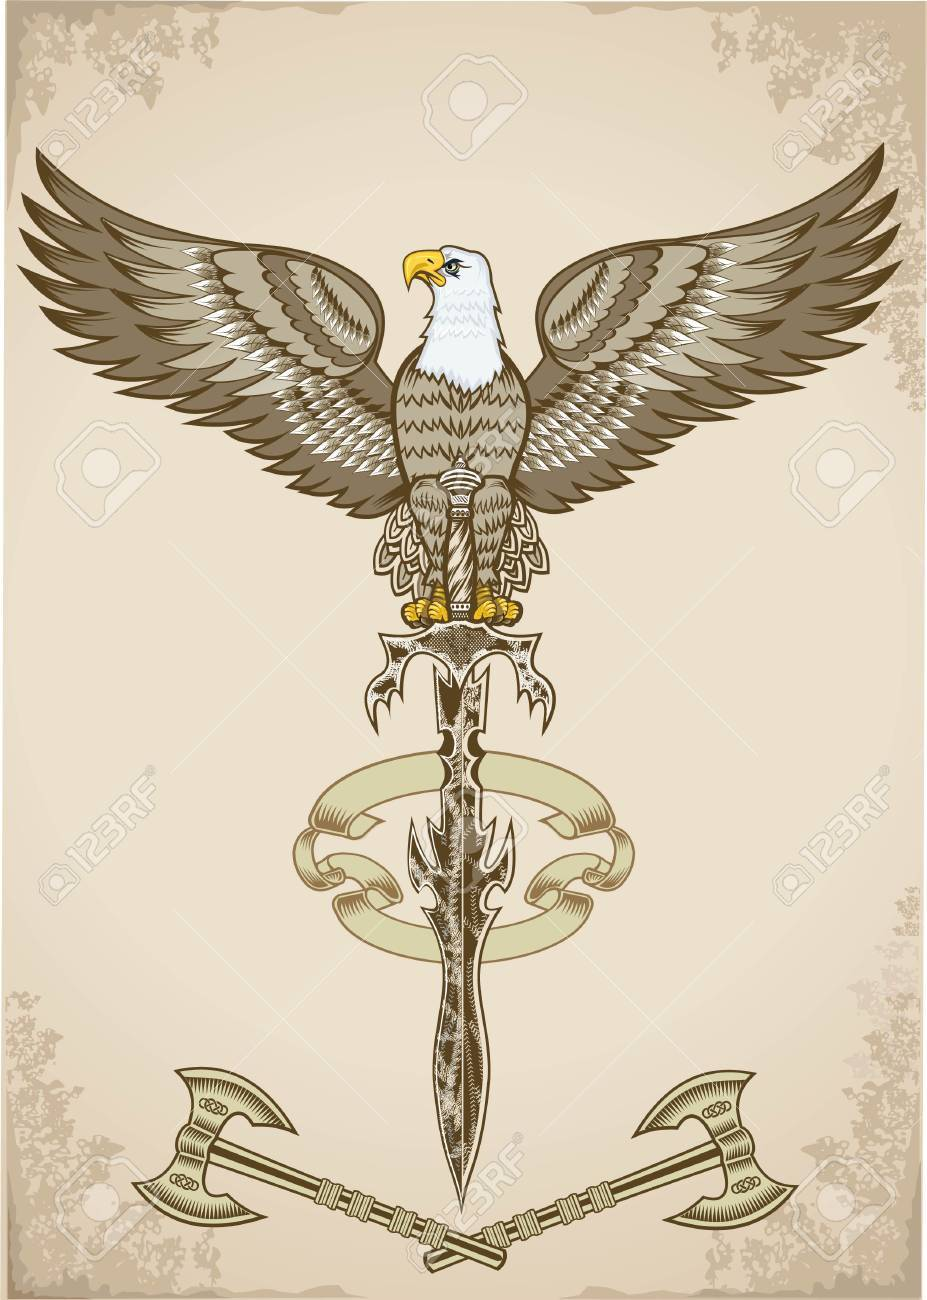 927x1300 American Eagle With Sword Illustration. Royalty Free Cliparts